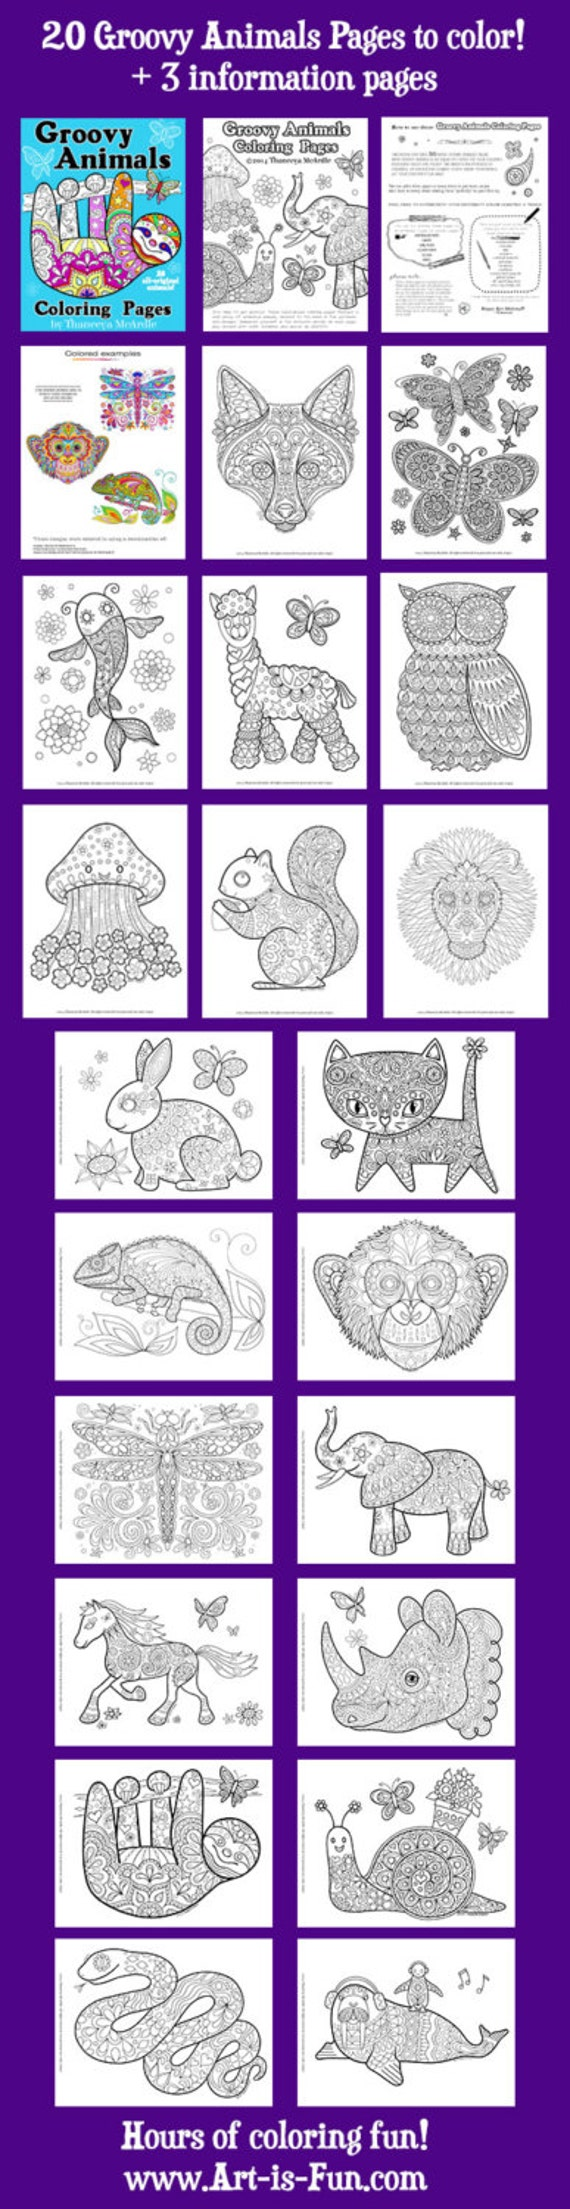 Groovy Animals Coloring Pages PDF 20 Printable Animal